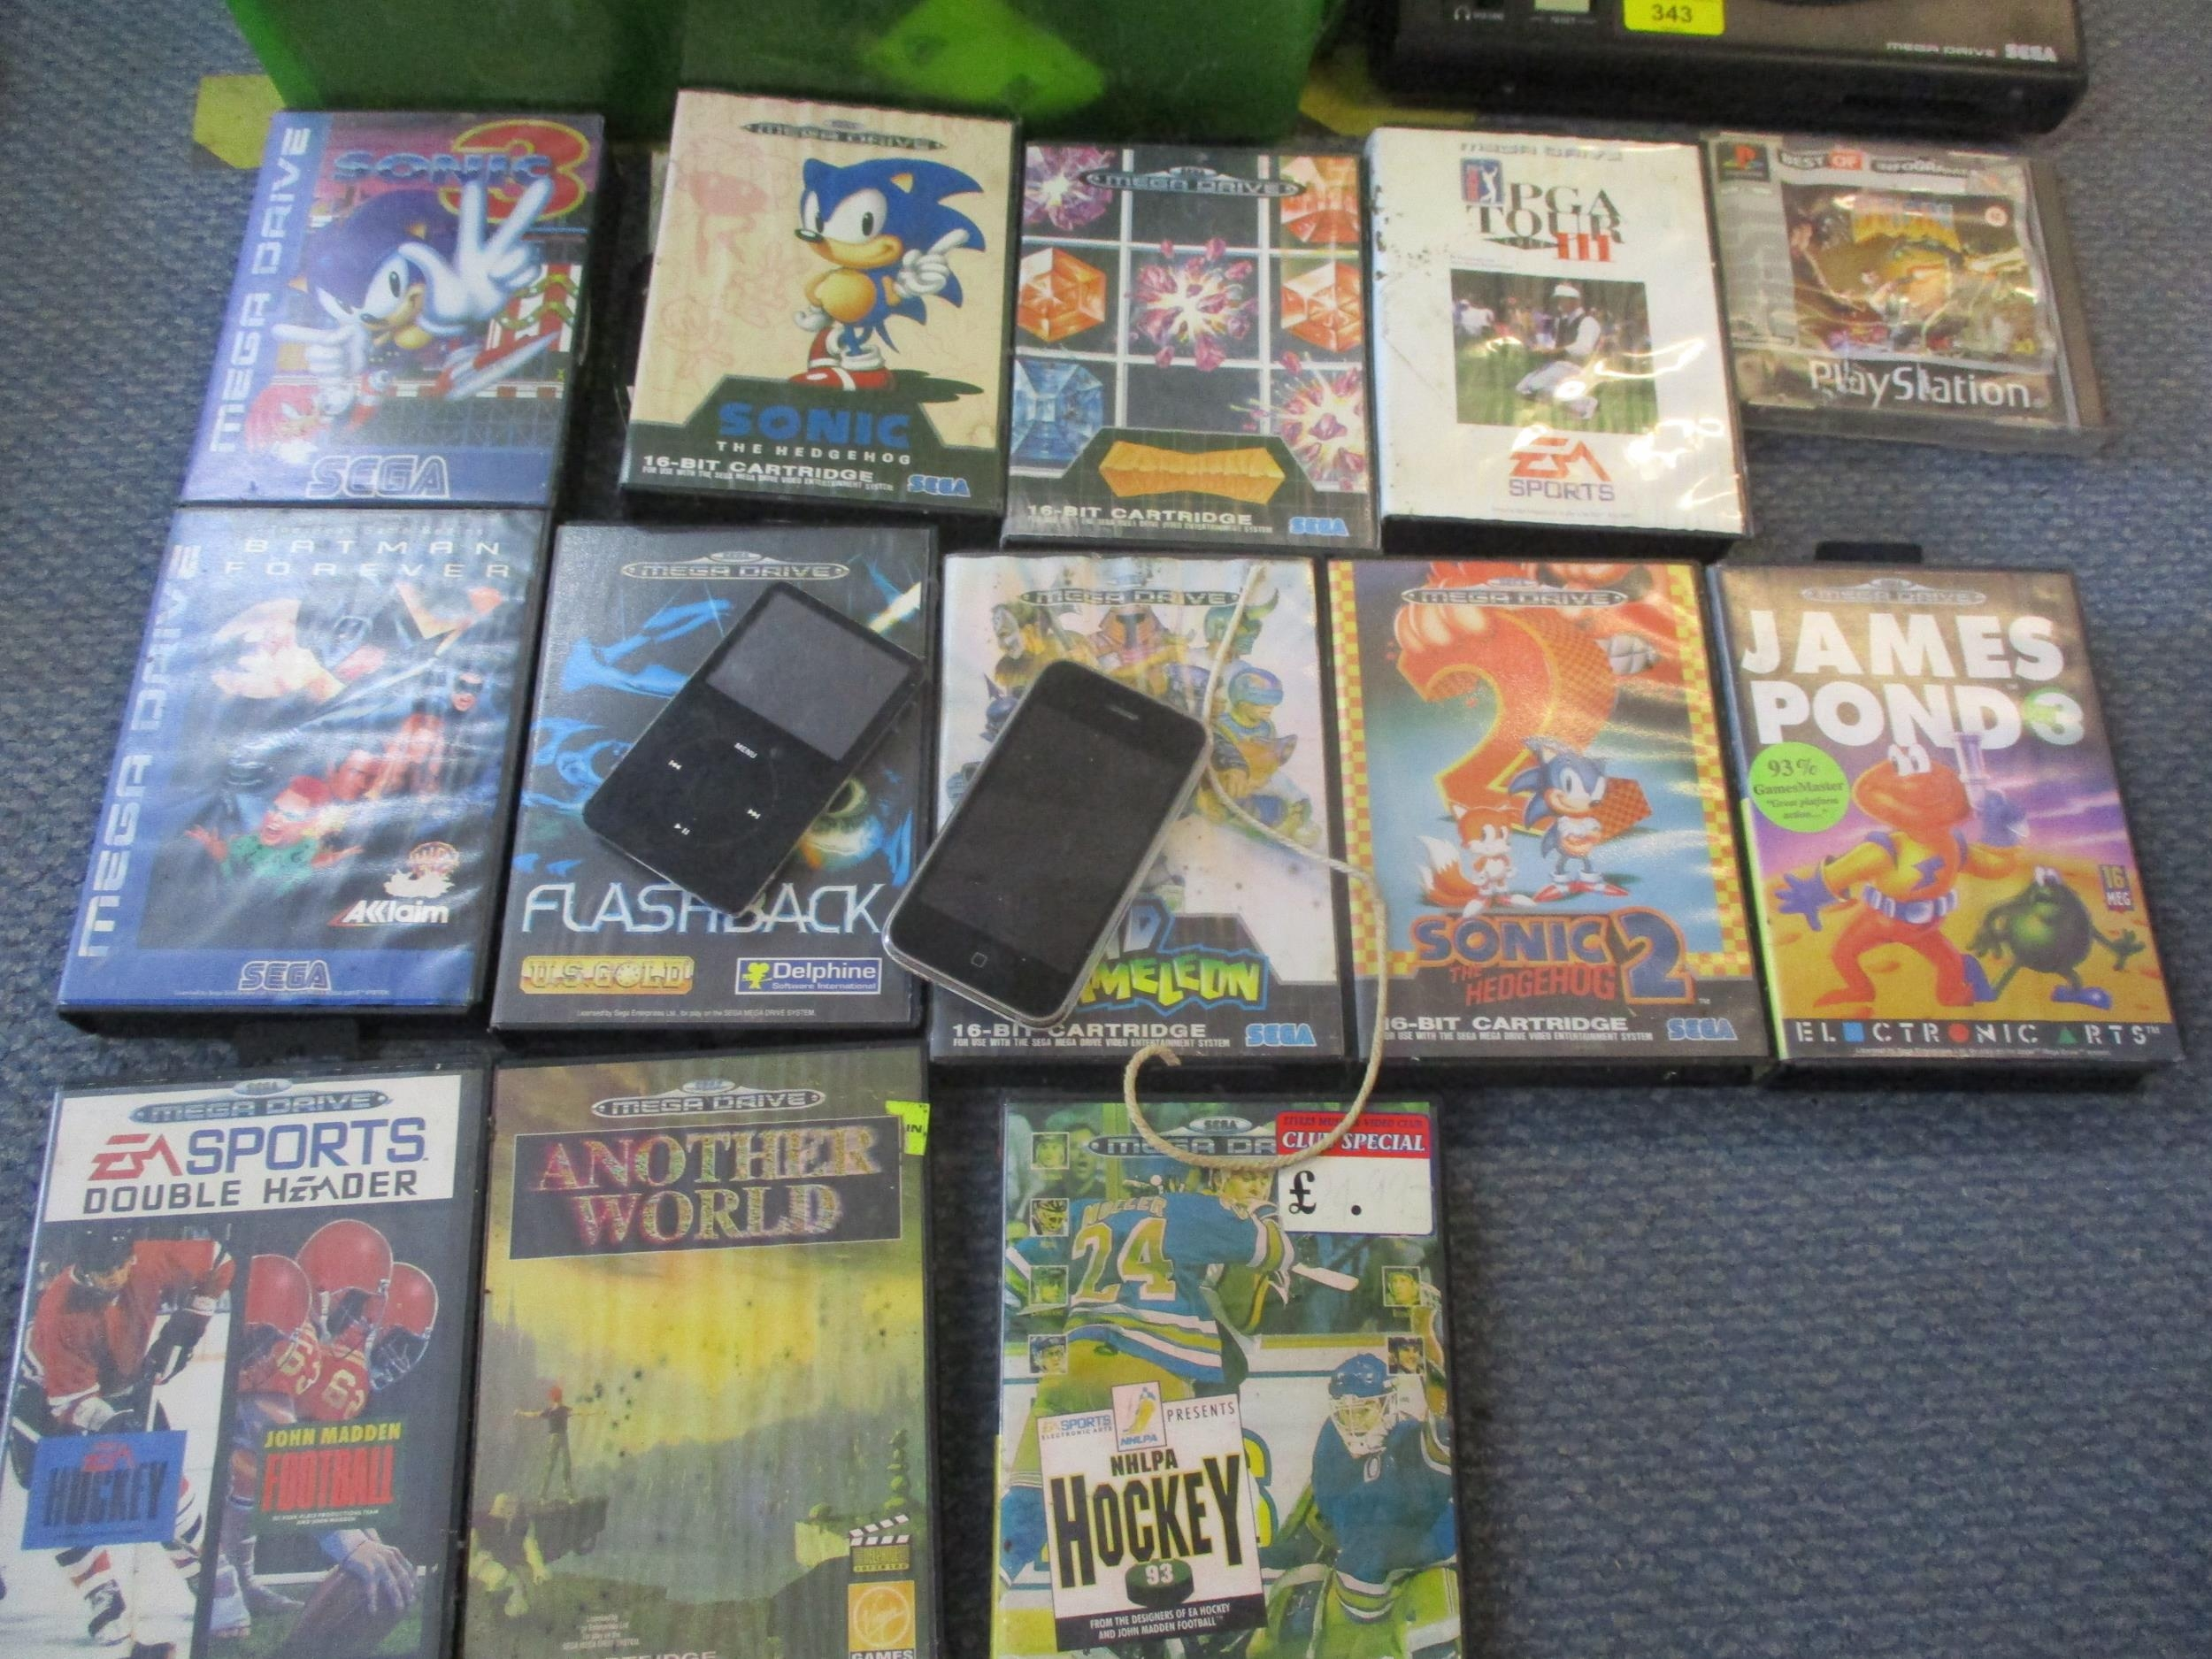 Gaming equipment A/F to include a Sega 16-bit Megadrive console, various games A/F, an ipod A/F - Image 4 of 5